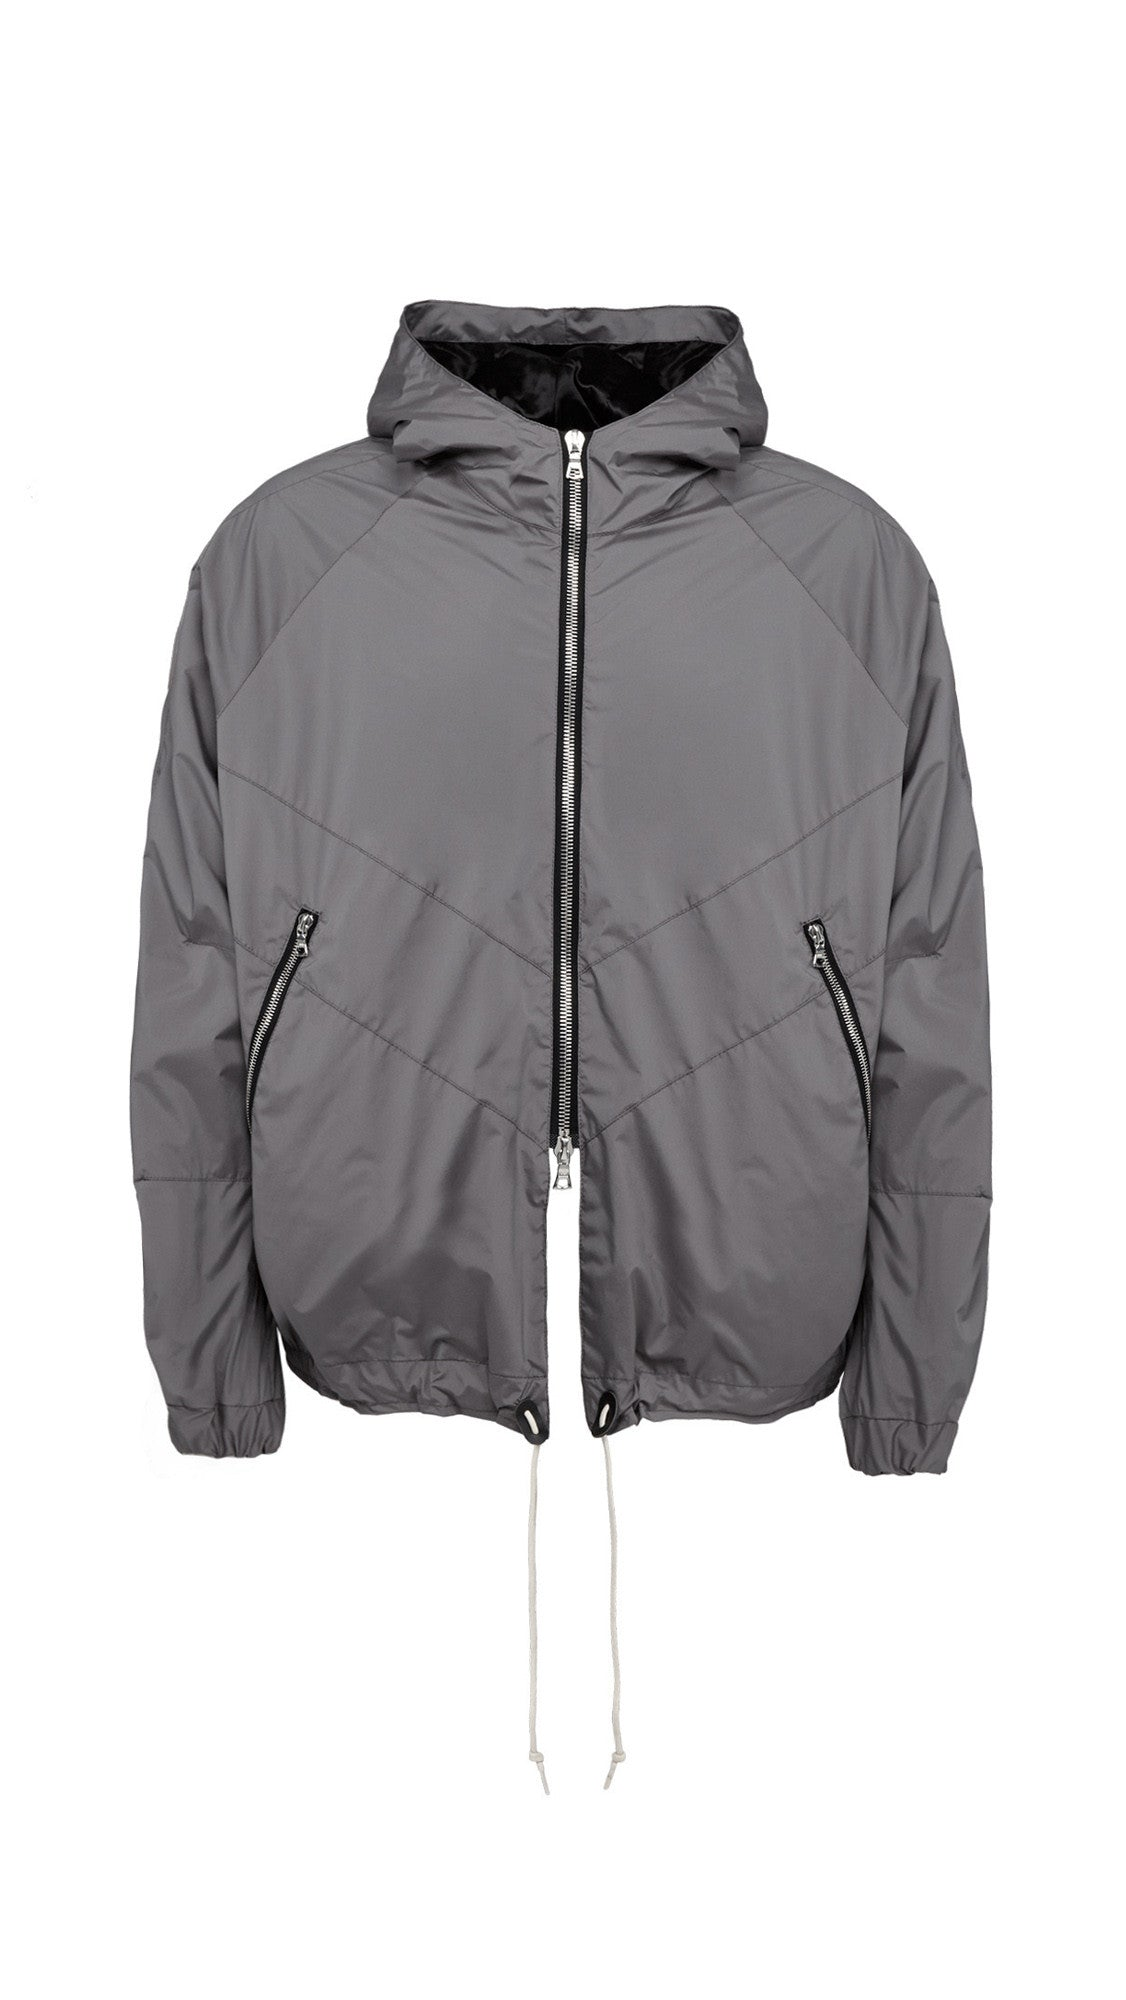 Zip Up Jacket - Nardo